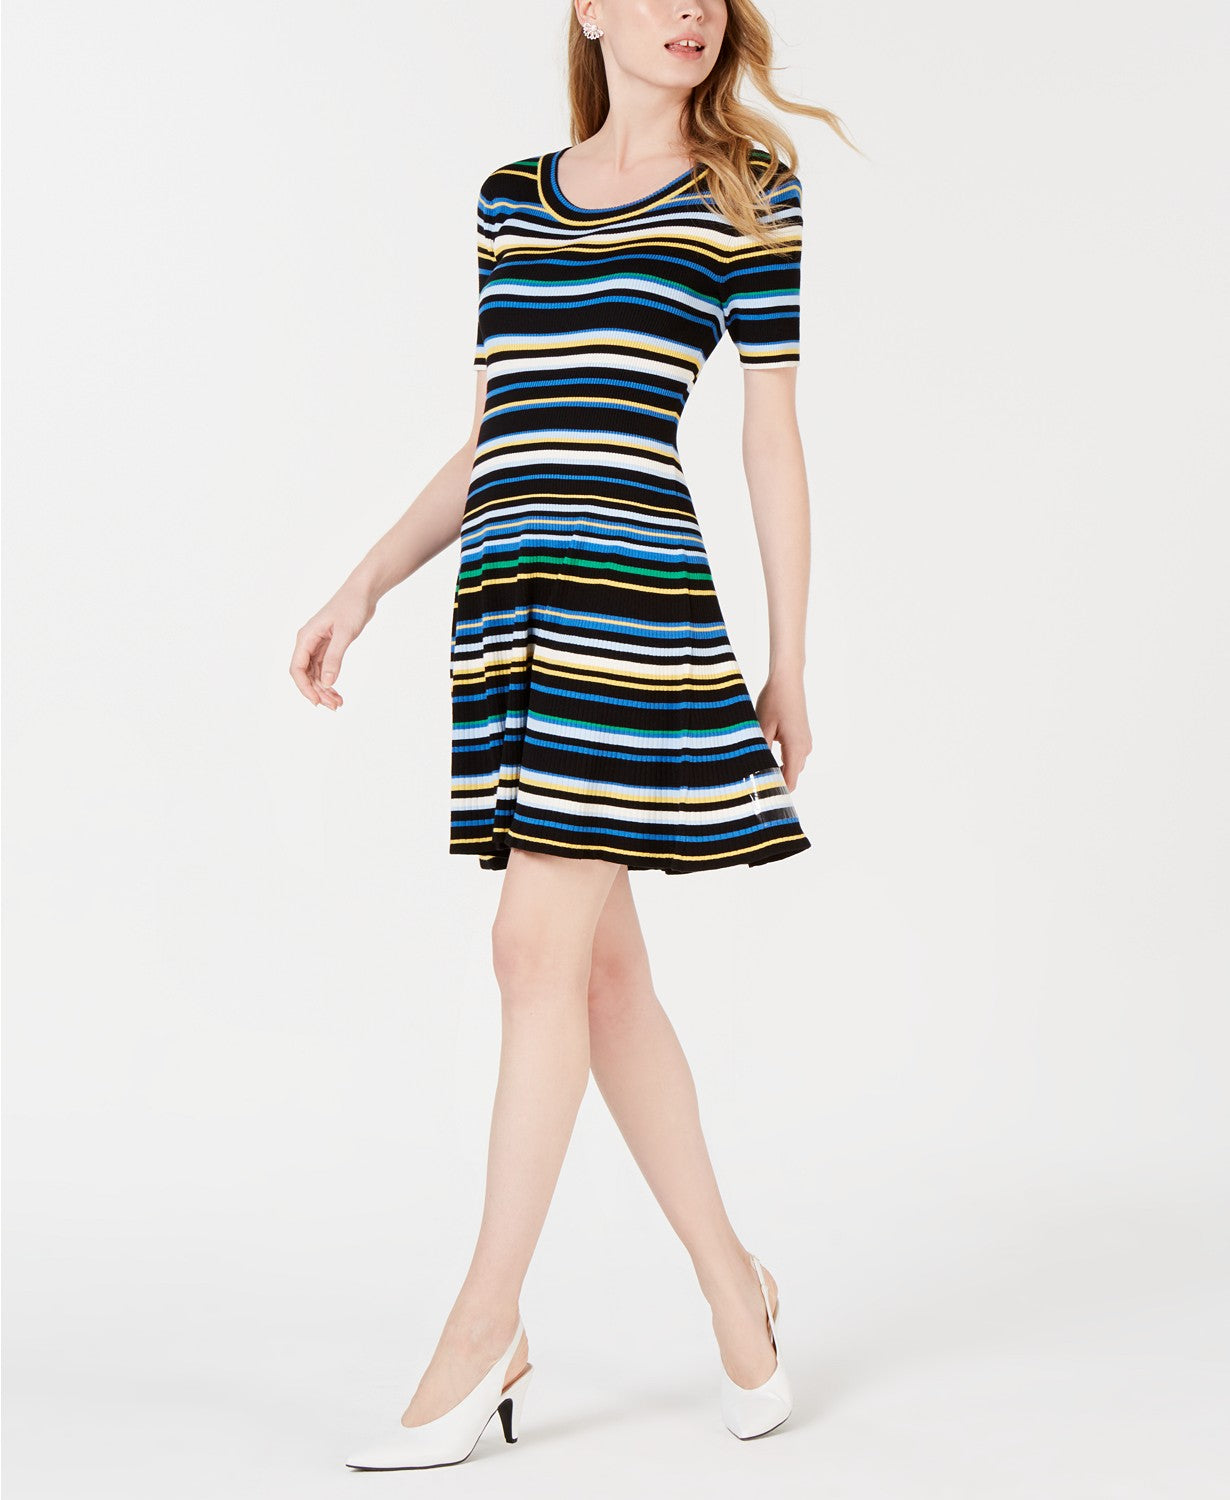 Maison Jules Striped Fit Flare Sweater Dress Black Combo